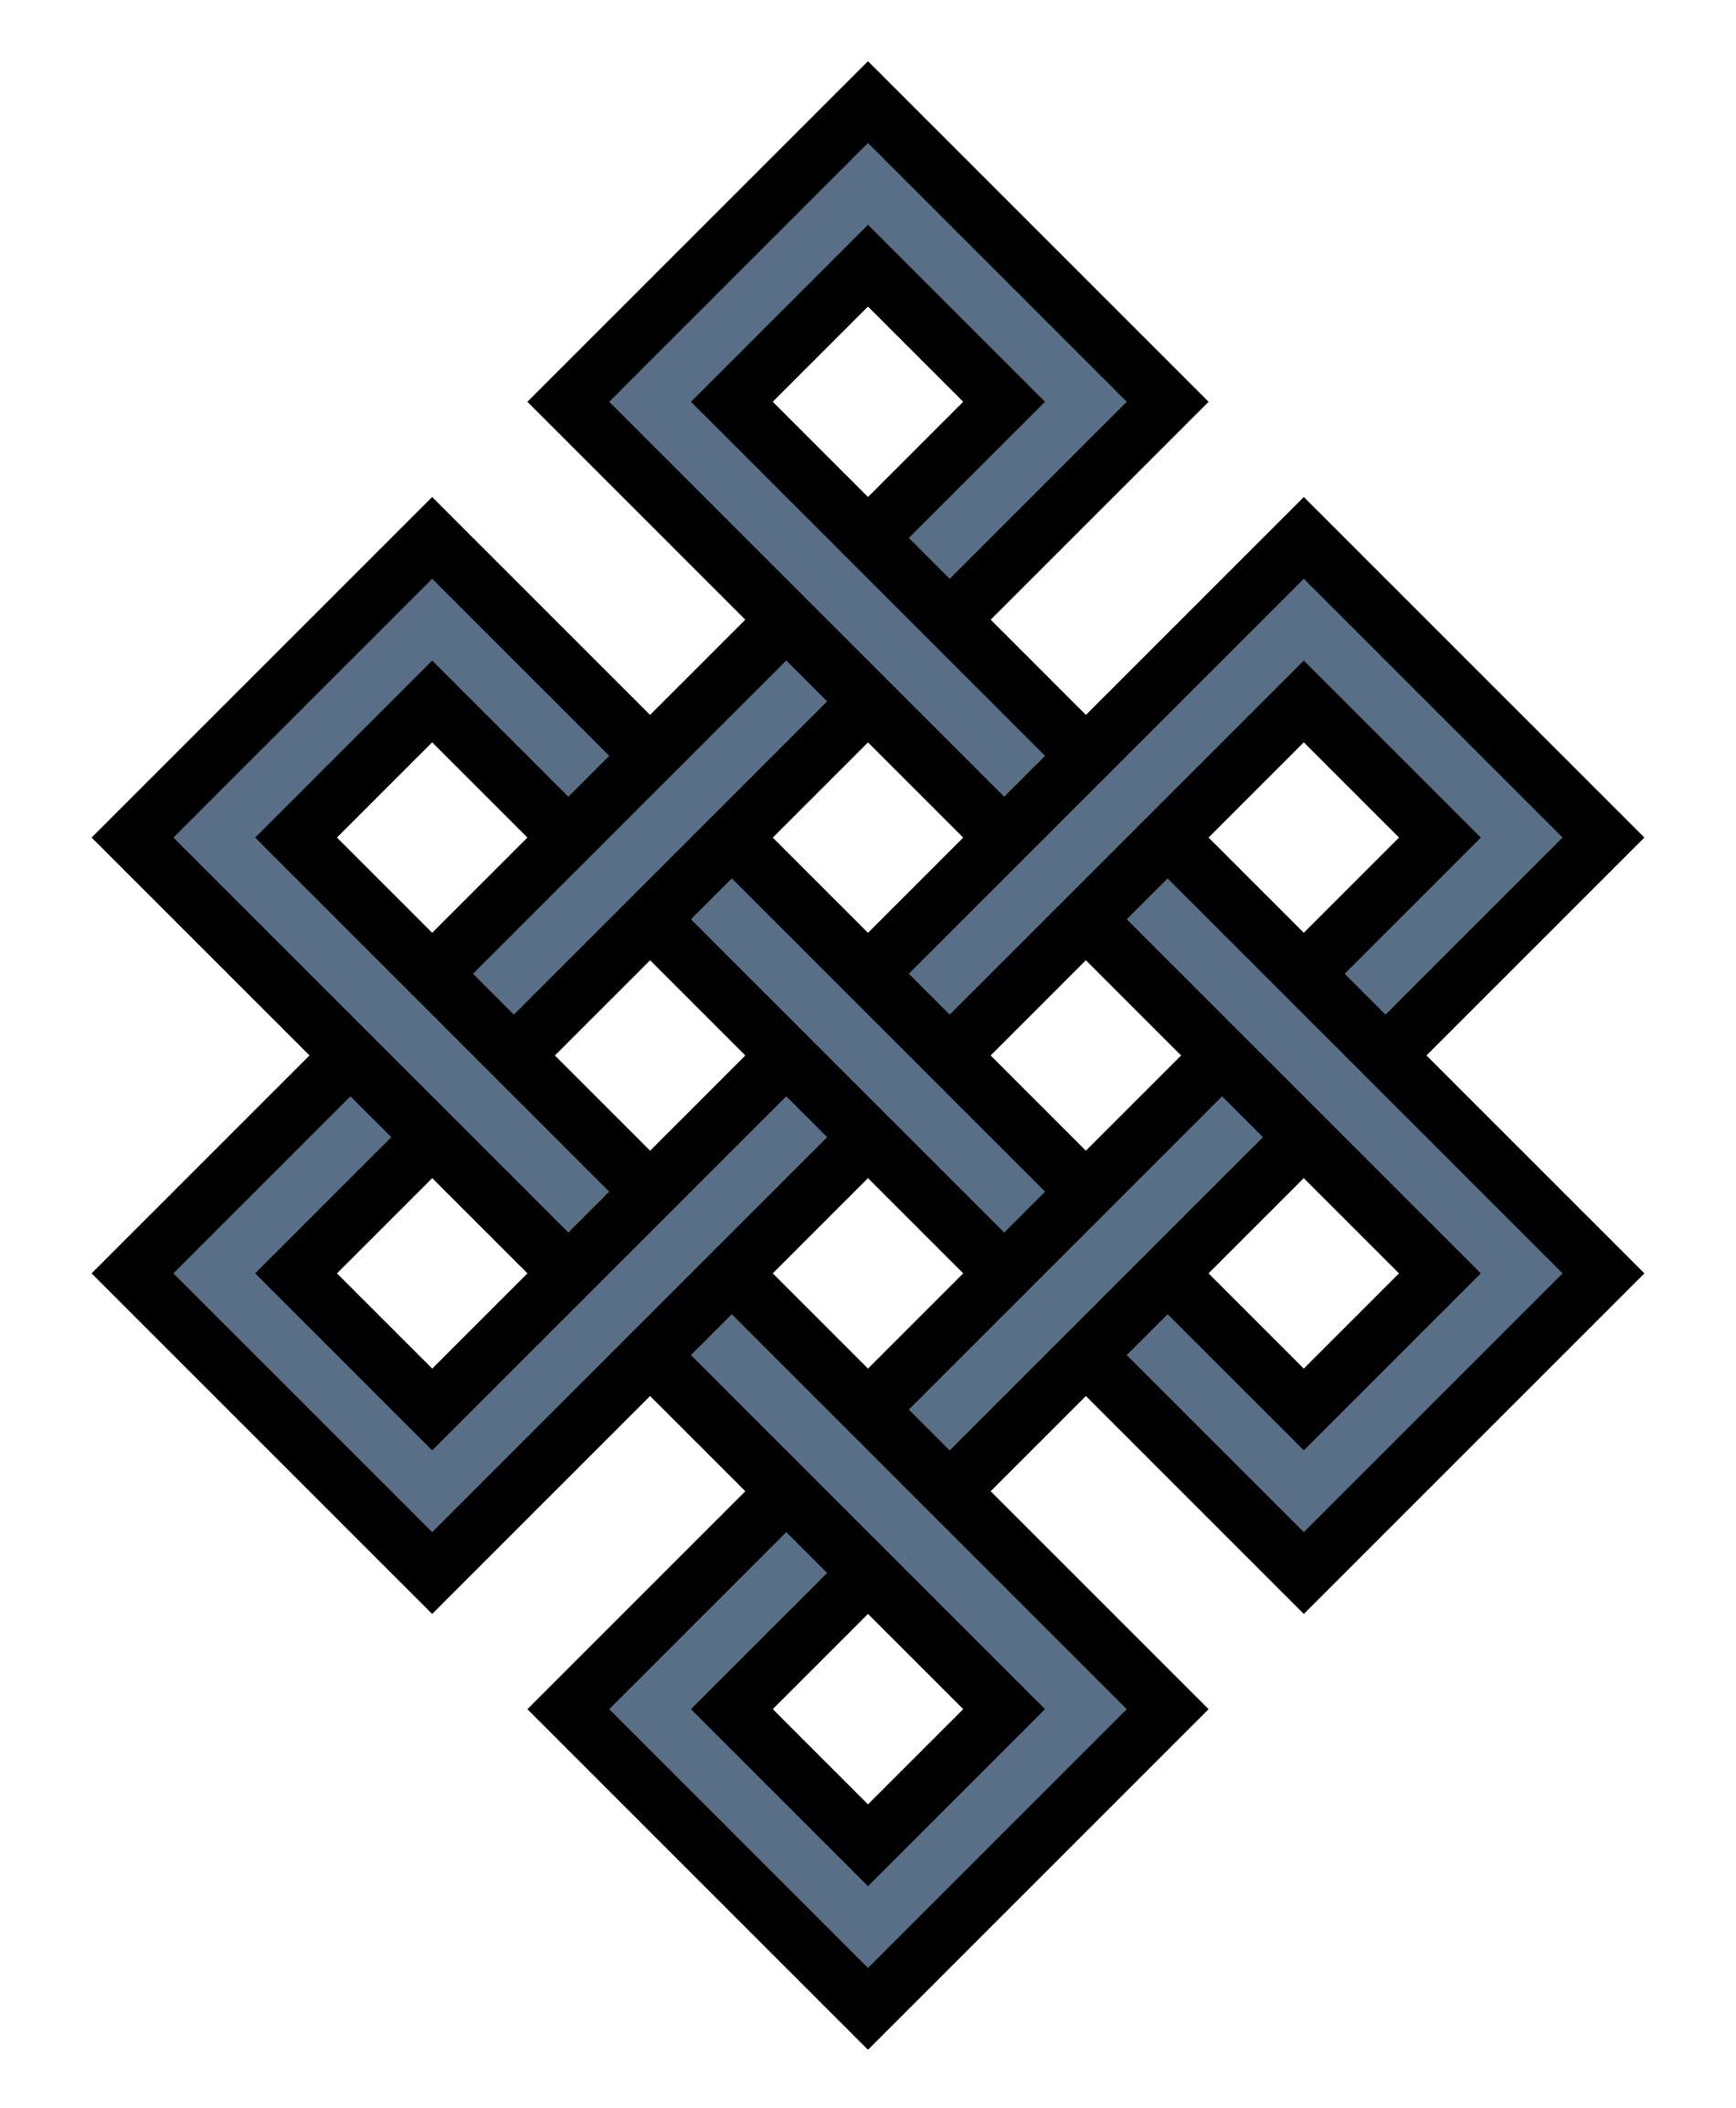 Buddhist Symbol Of The Eternal Knot The Intertwining Of Lines In